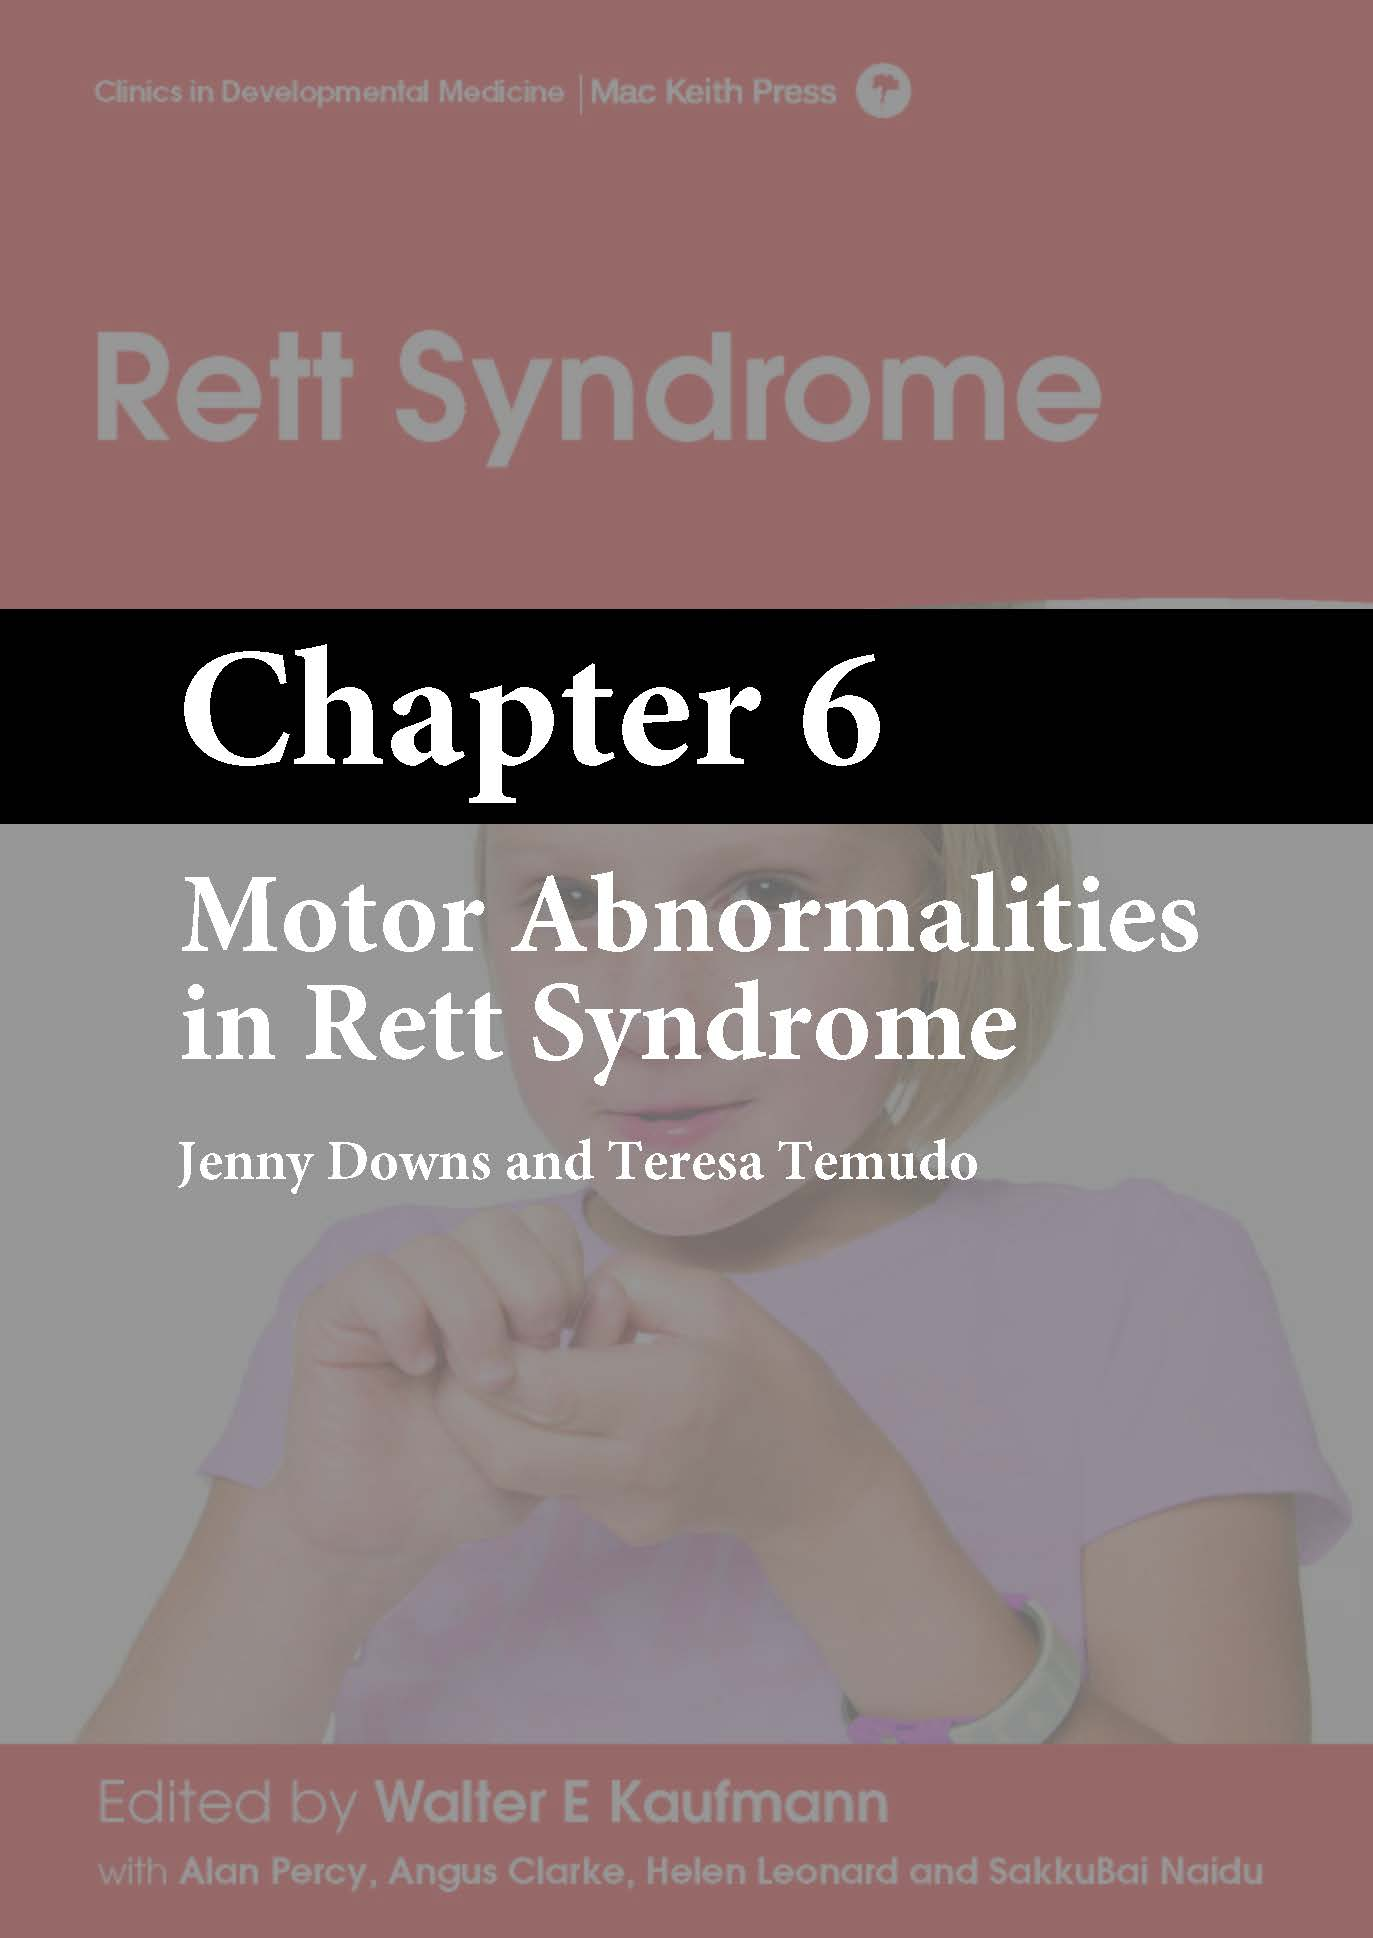 Rett Syndrome, Kaufmann, Chapter 6 cover